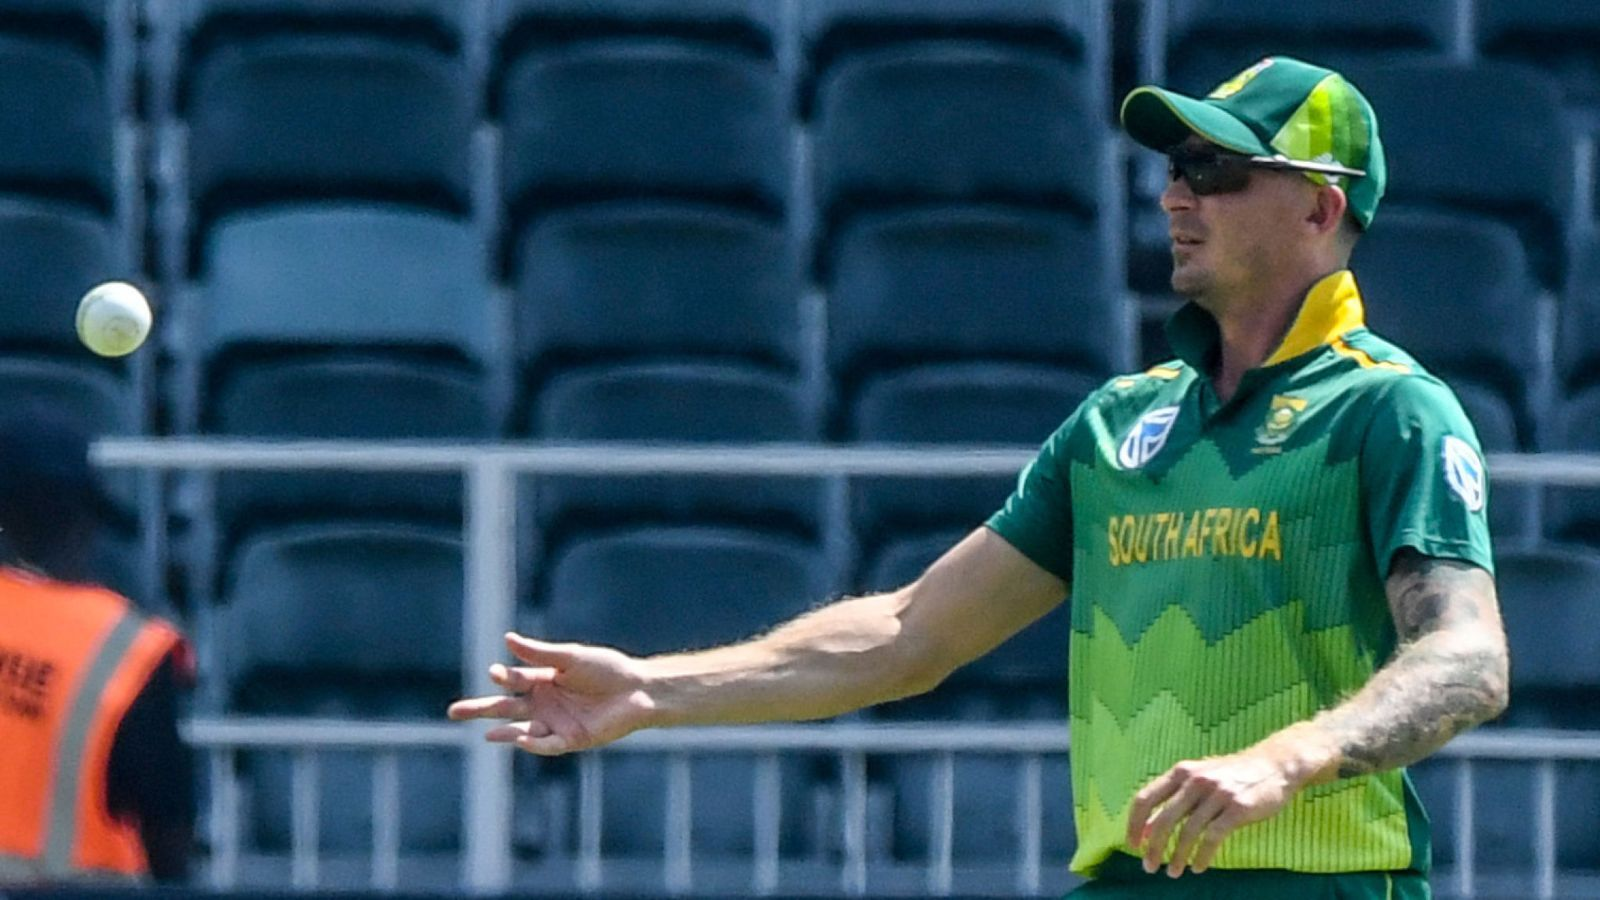 South Africa's Dale Steyn Ruled Out Of England's Cricket - Icc Cricket World Cup 2019 , HD Wallpaper & Backgrounds